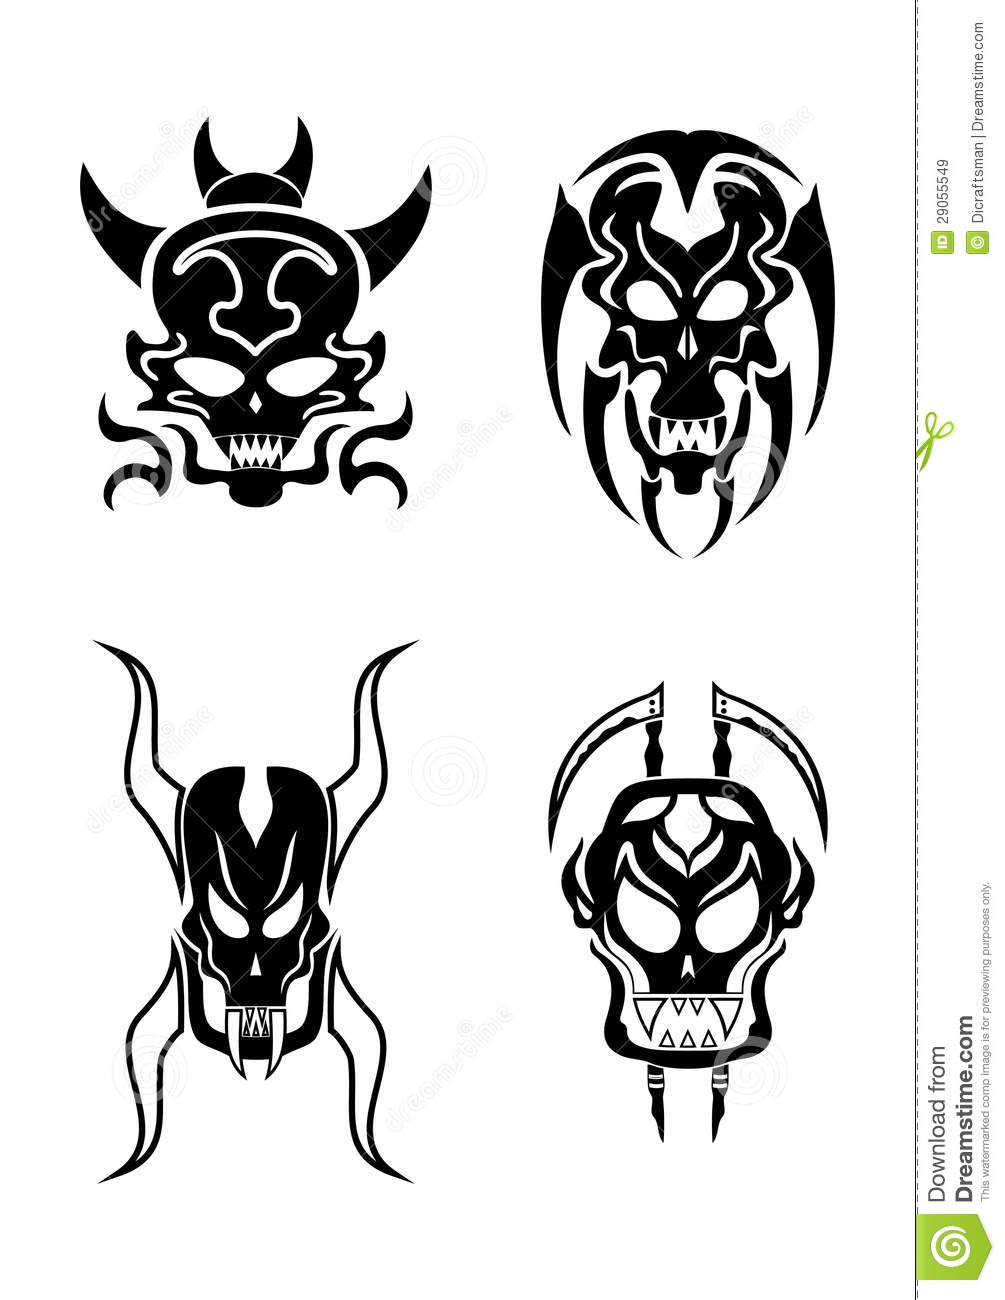 How To Draw Batman besides Happy Ghost Template in addition Demon Sketches additionally How To Draw A Cool Devil Head in addition Zodiac Signs Illustrations Andreas Preis. on scary face symbols